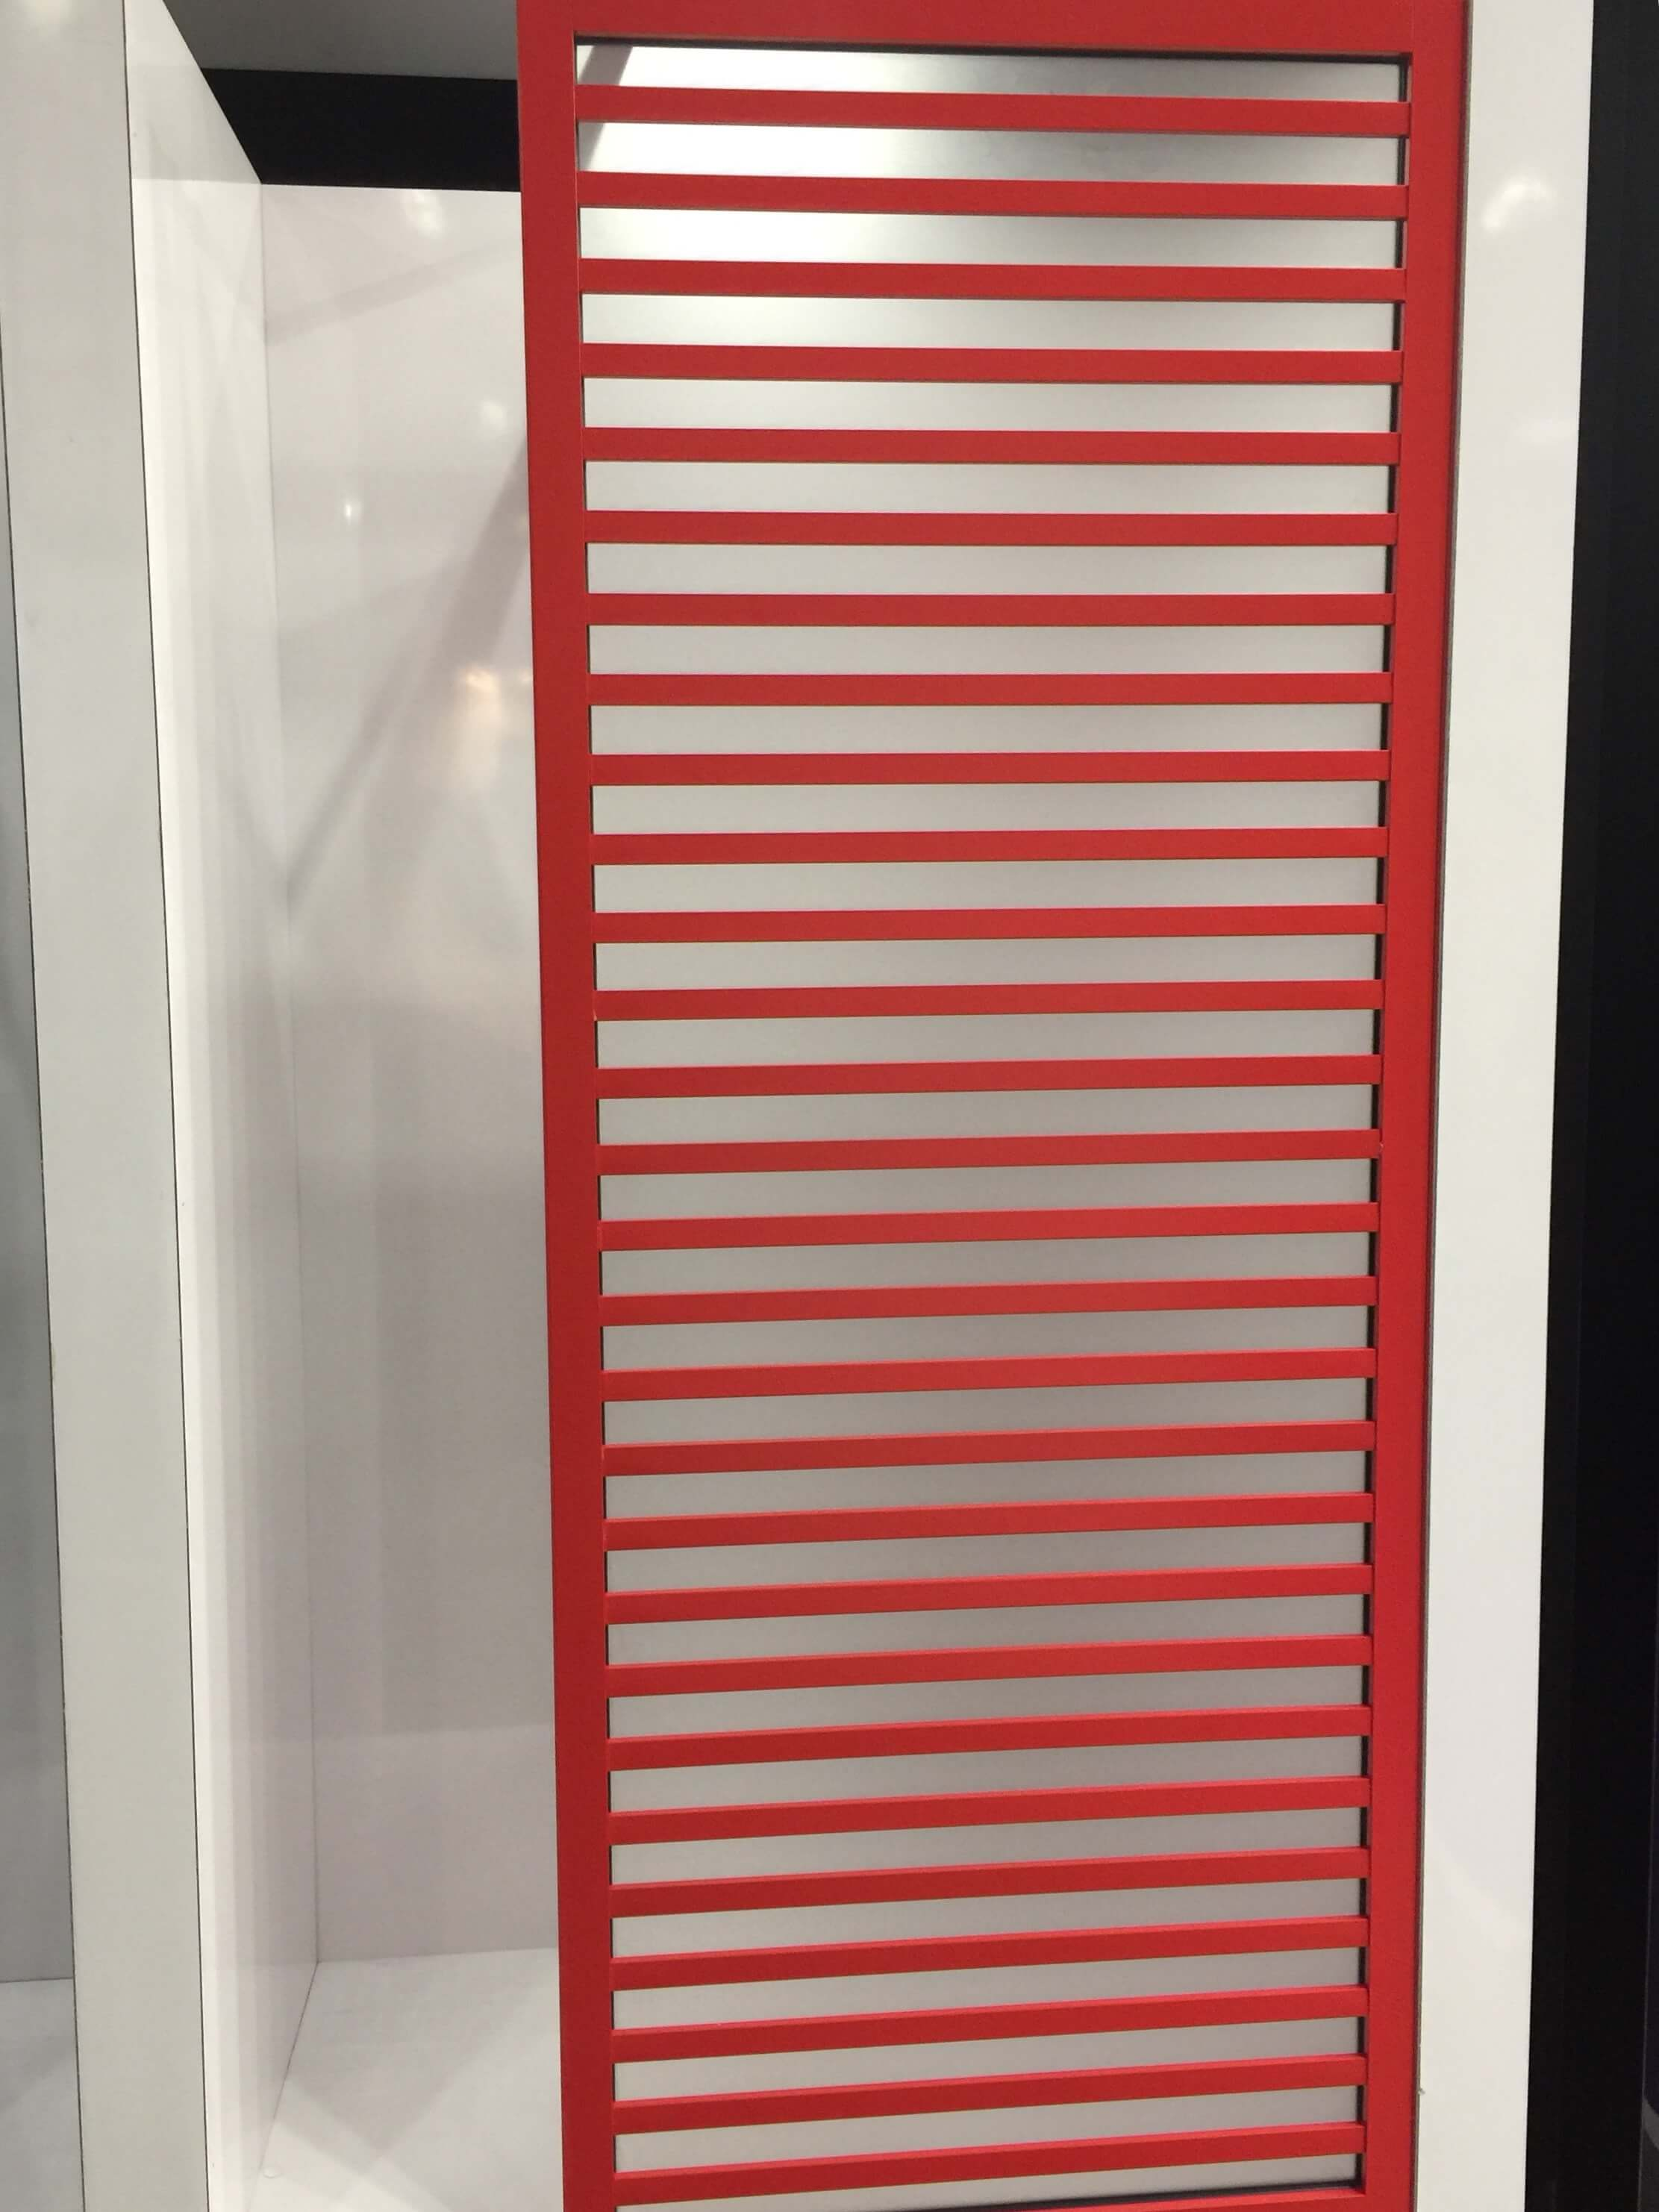 Colorful aluminum shower doors with wood look details by Coastal Shower Doors #showerdoors #showerenclosure